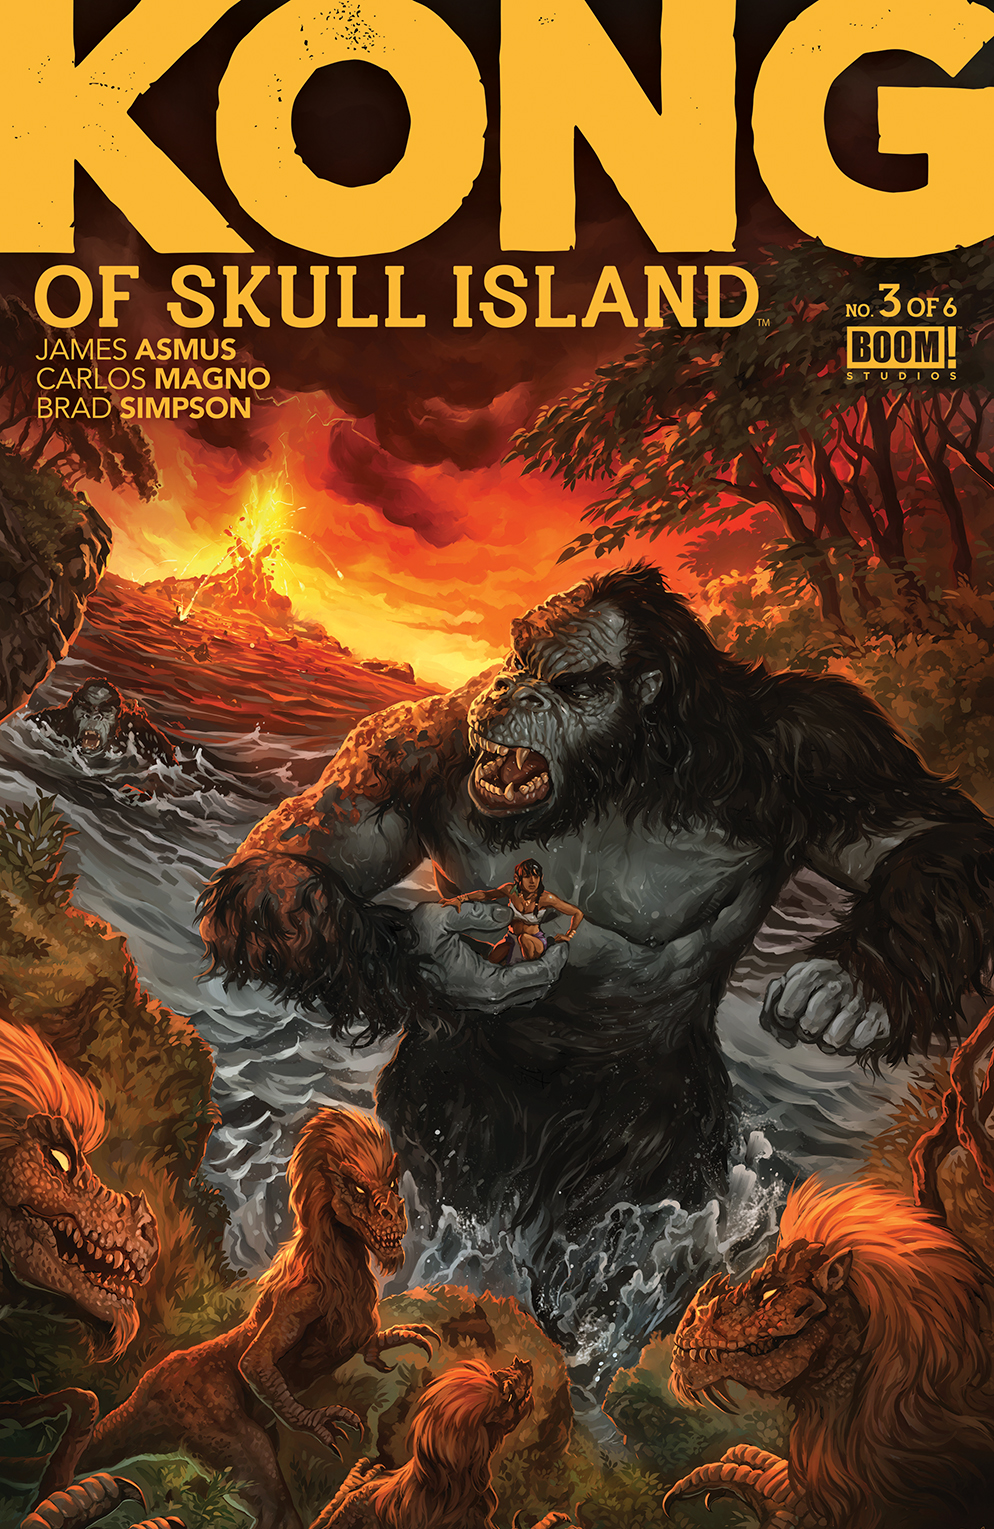 KongSkullIsland_003_Main_PRESS.jpg